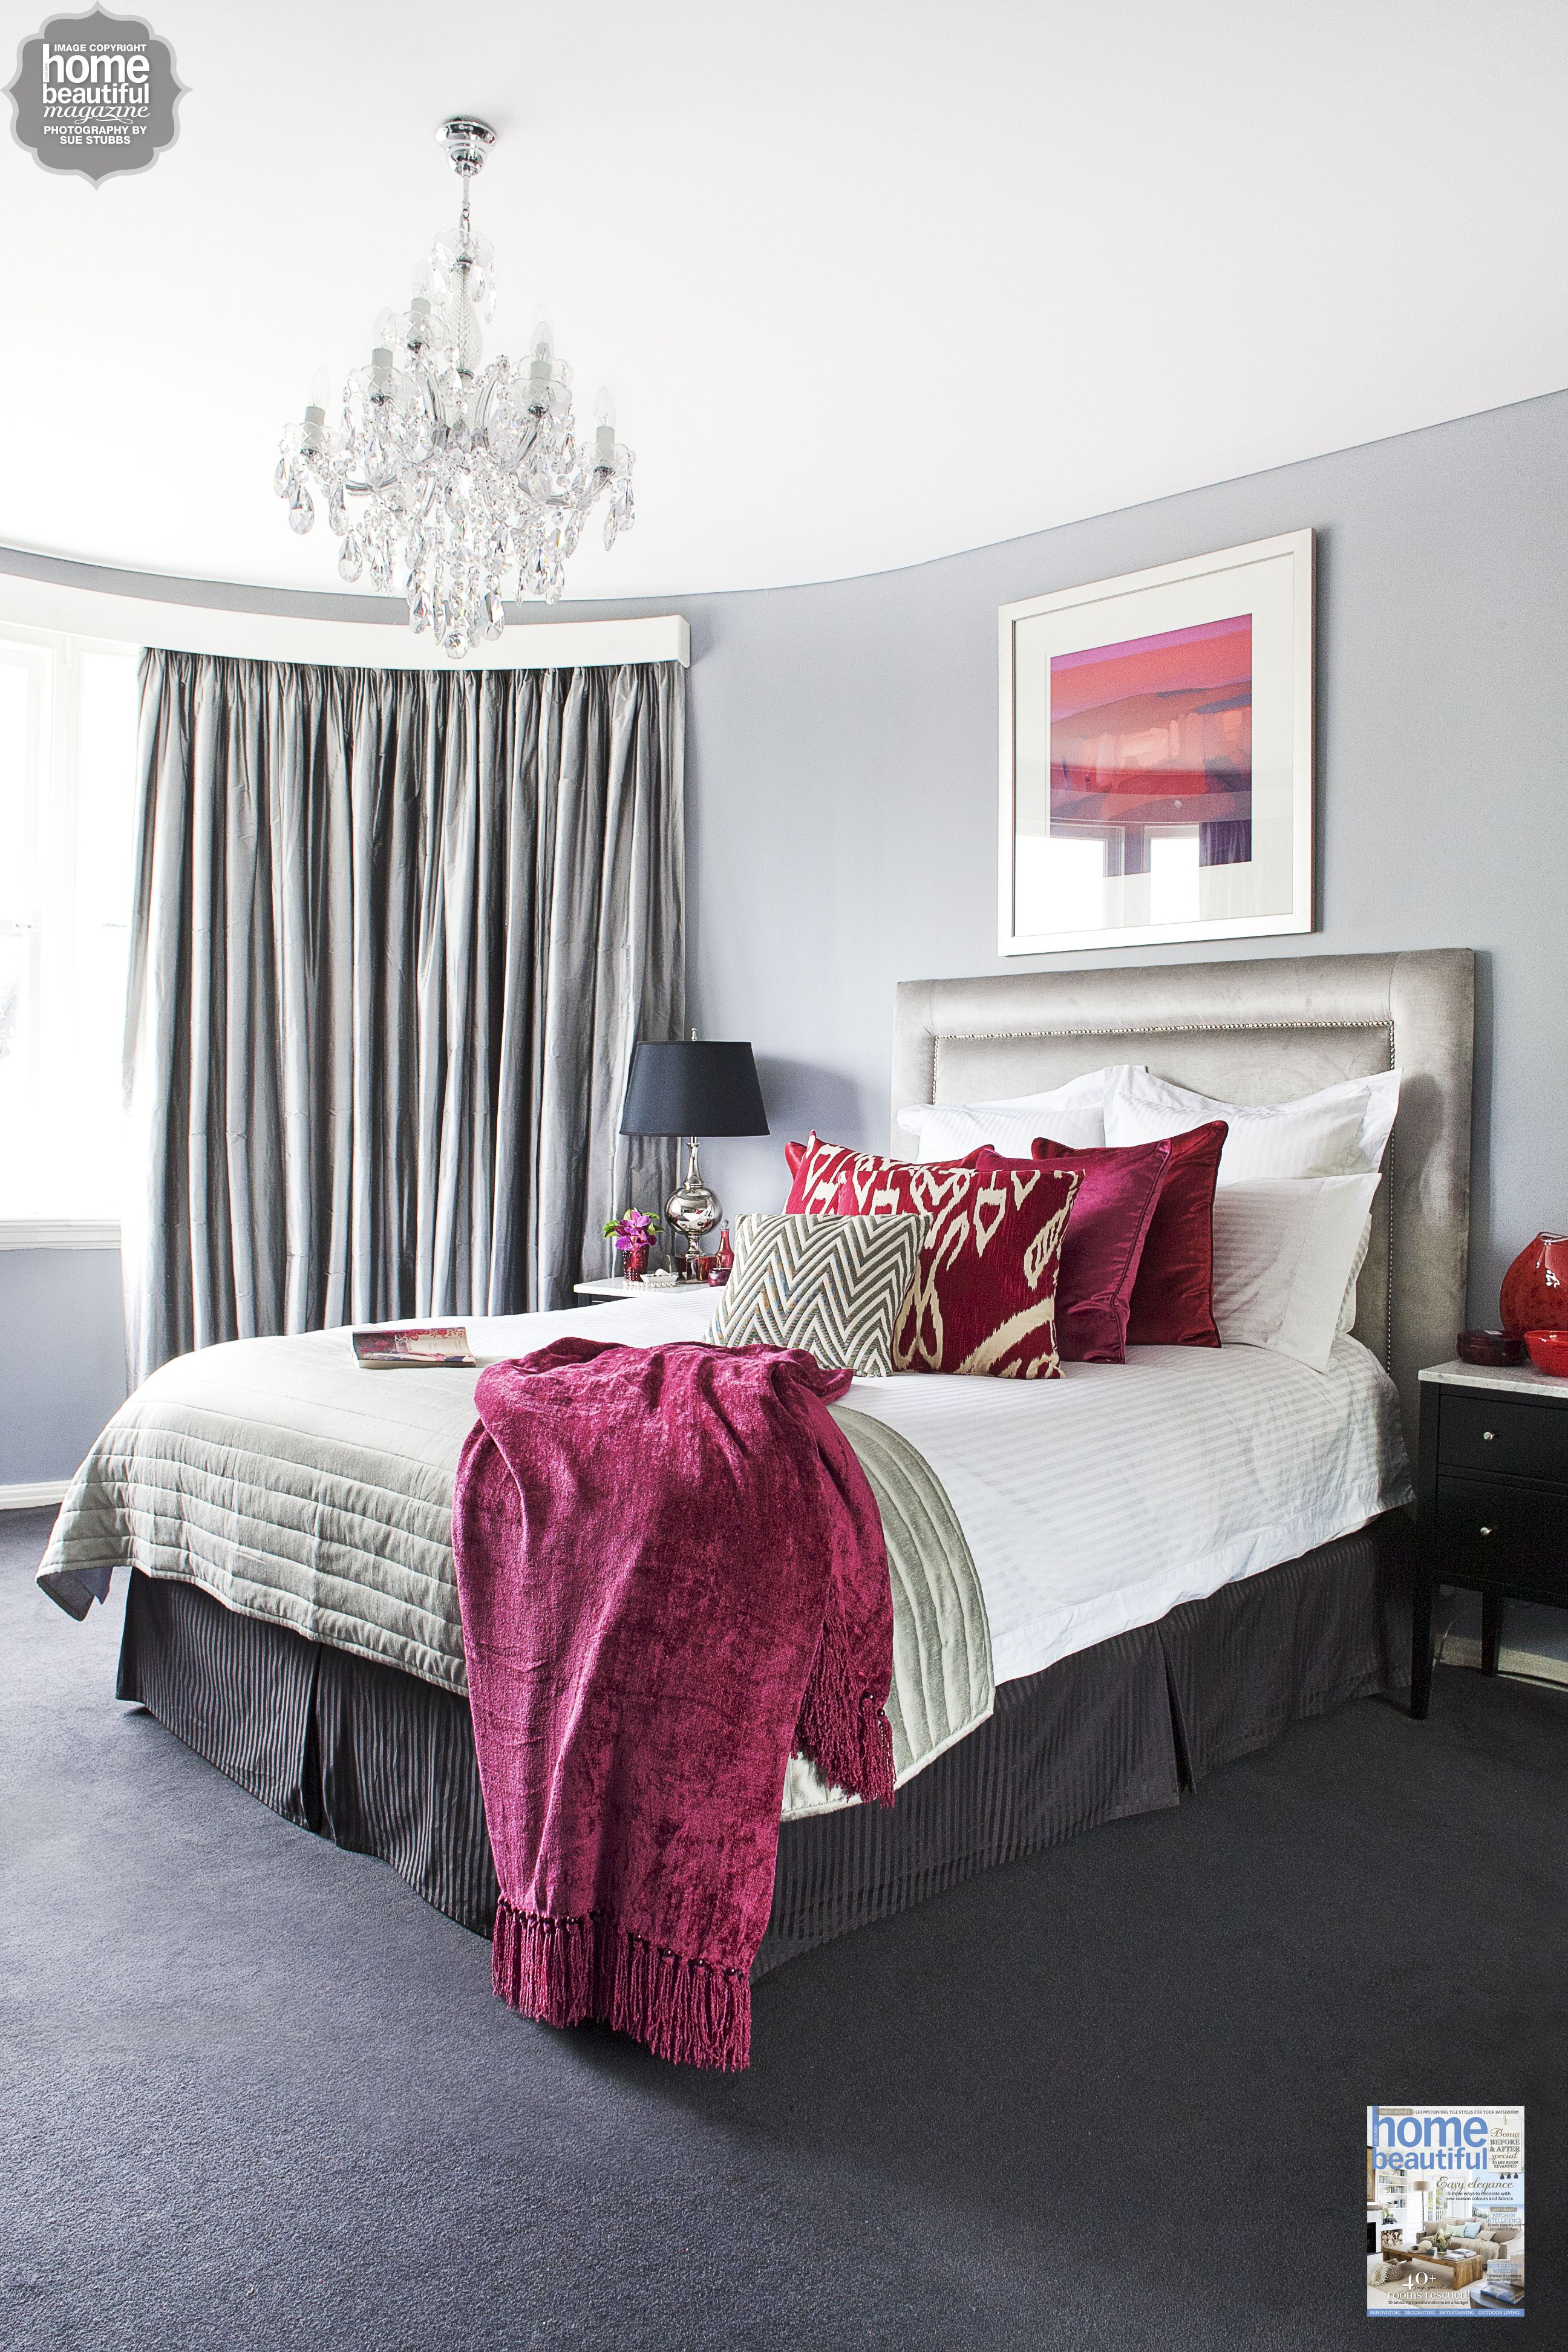 Rich Burgundy Touches Add Glamour To This Sydney Bedroom With